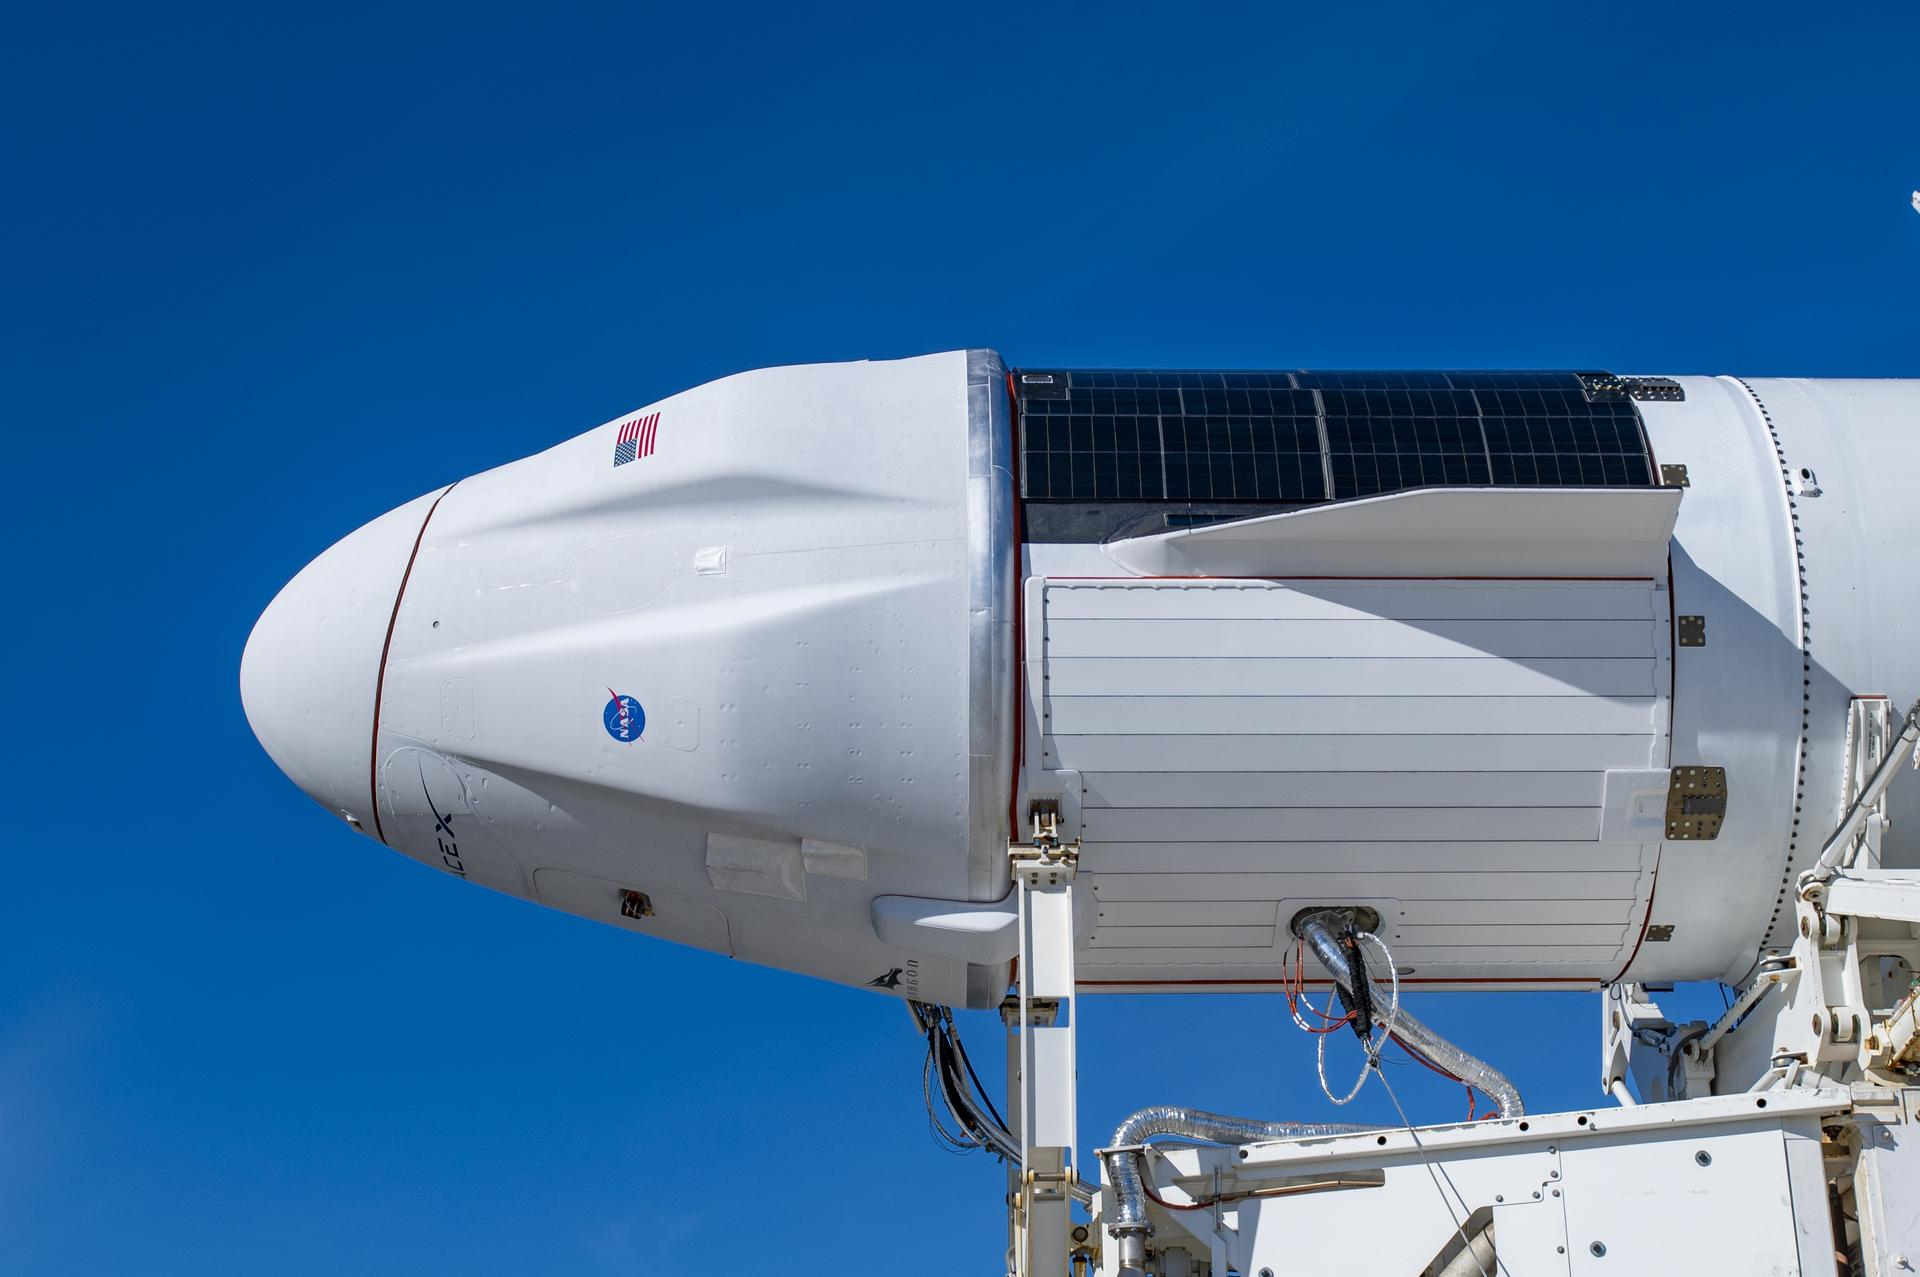 - KSC 20201202 PH SPX01 0003large - SpaceX launches first in new line of upgraded space station cargo ships – Spaceflight Now